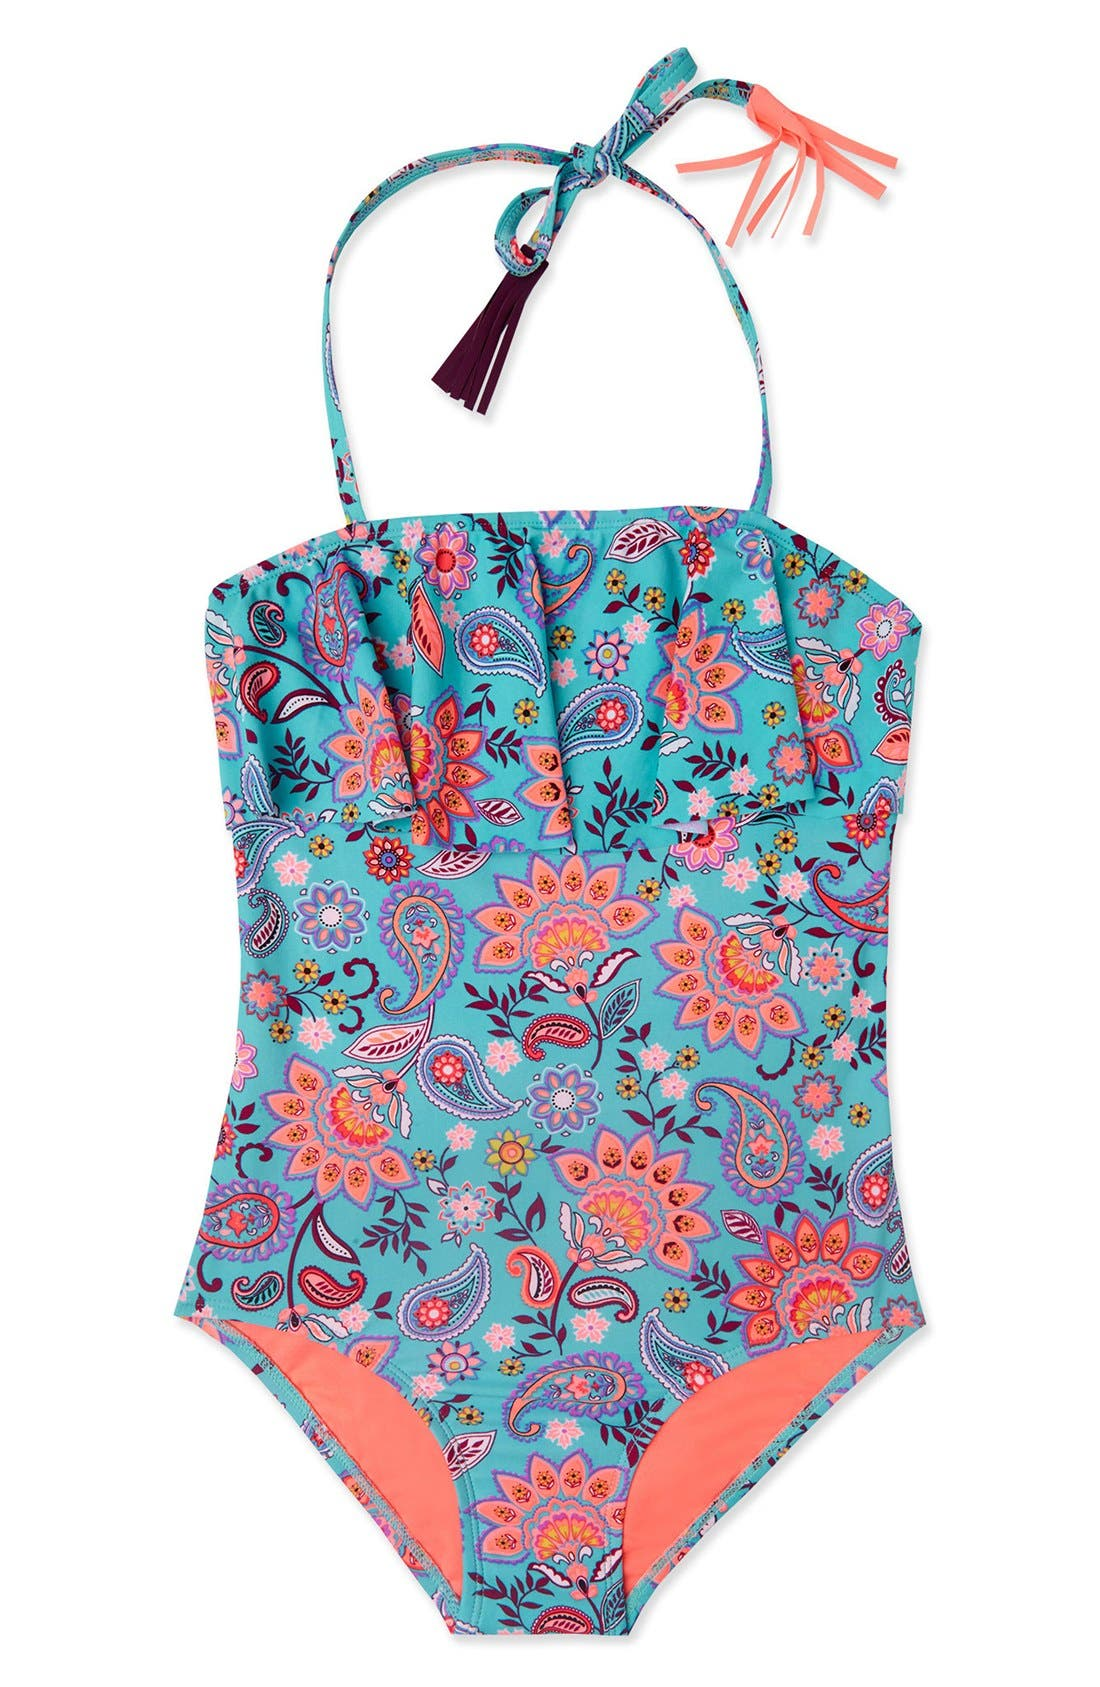 'Le Corsaire' Print One-Piece Swimsuit,                             Main thumbnail 1, color,                             Aqua Brown